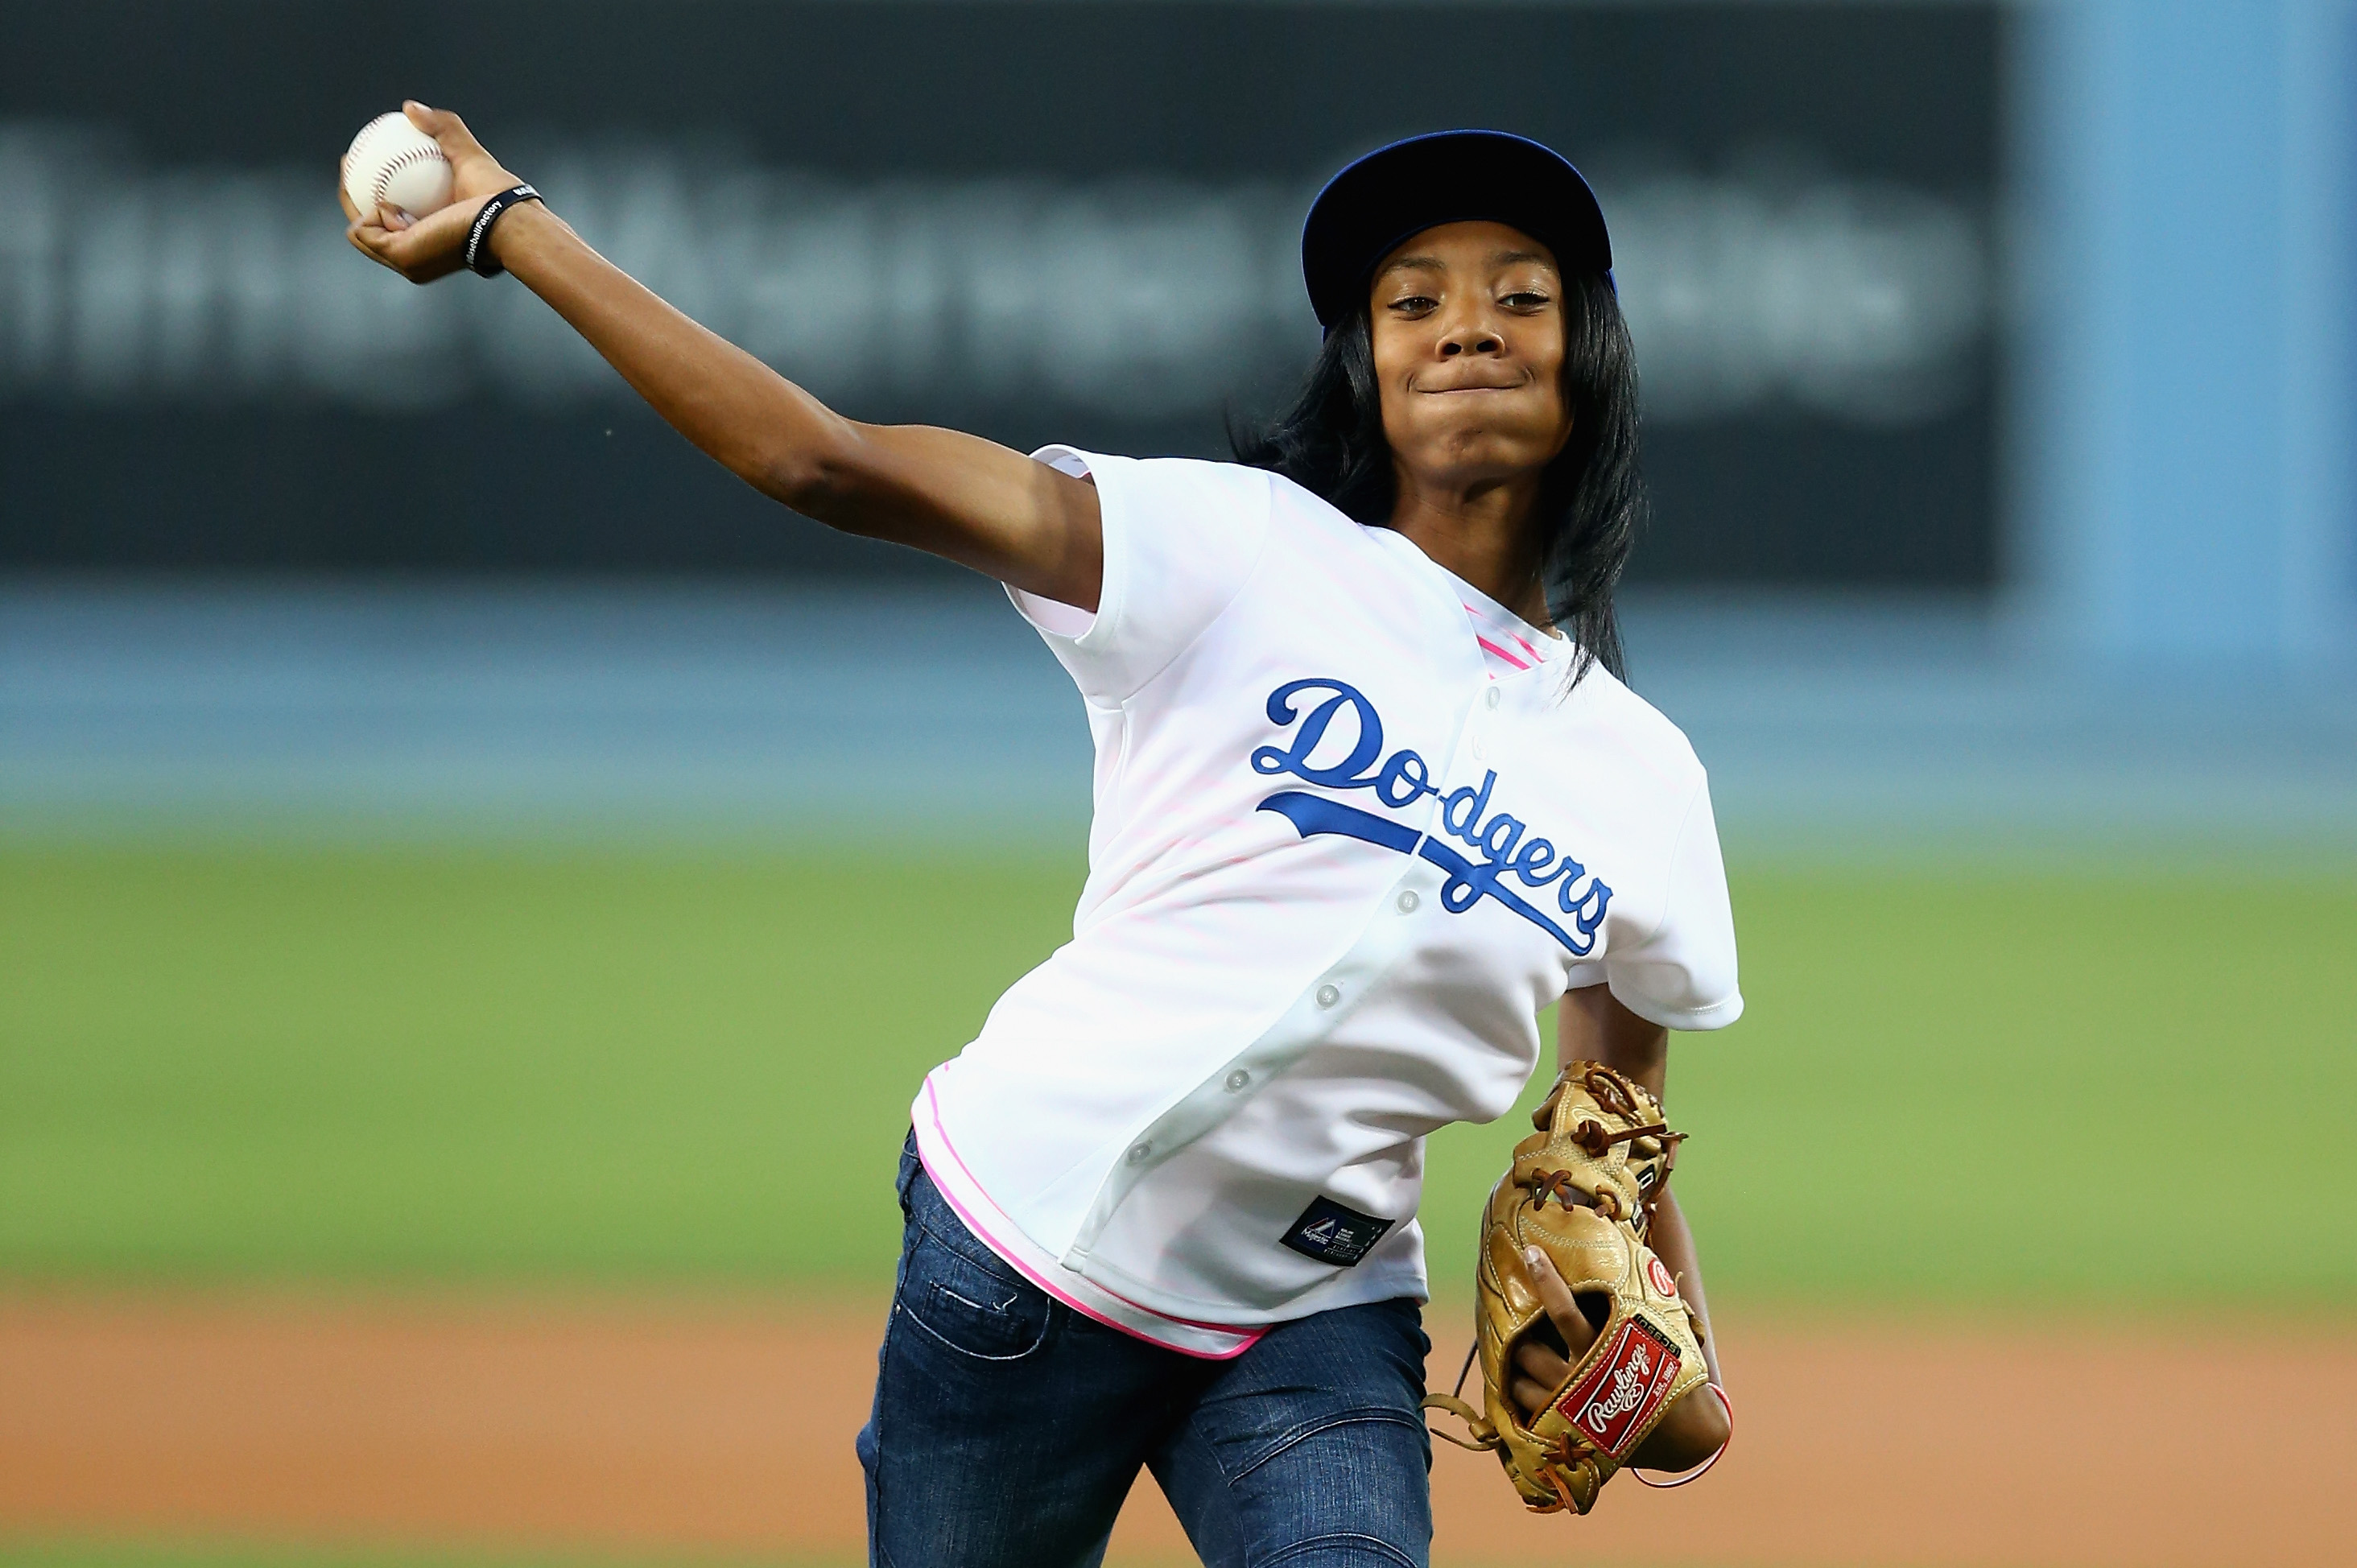 Mo'ne Davis throws out the first pitch at a Dodgers game in 2014. (Jeff Gross/Getty Images)